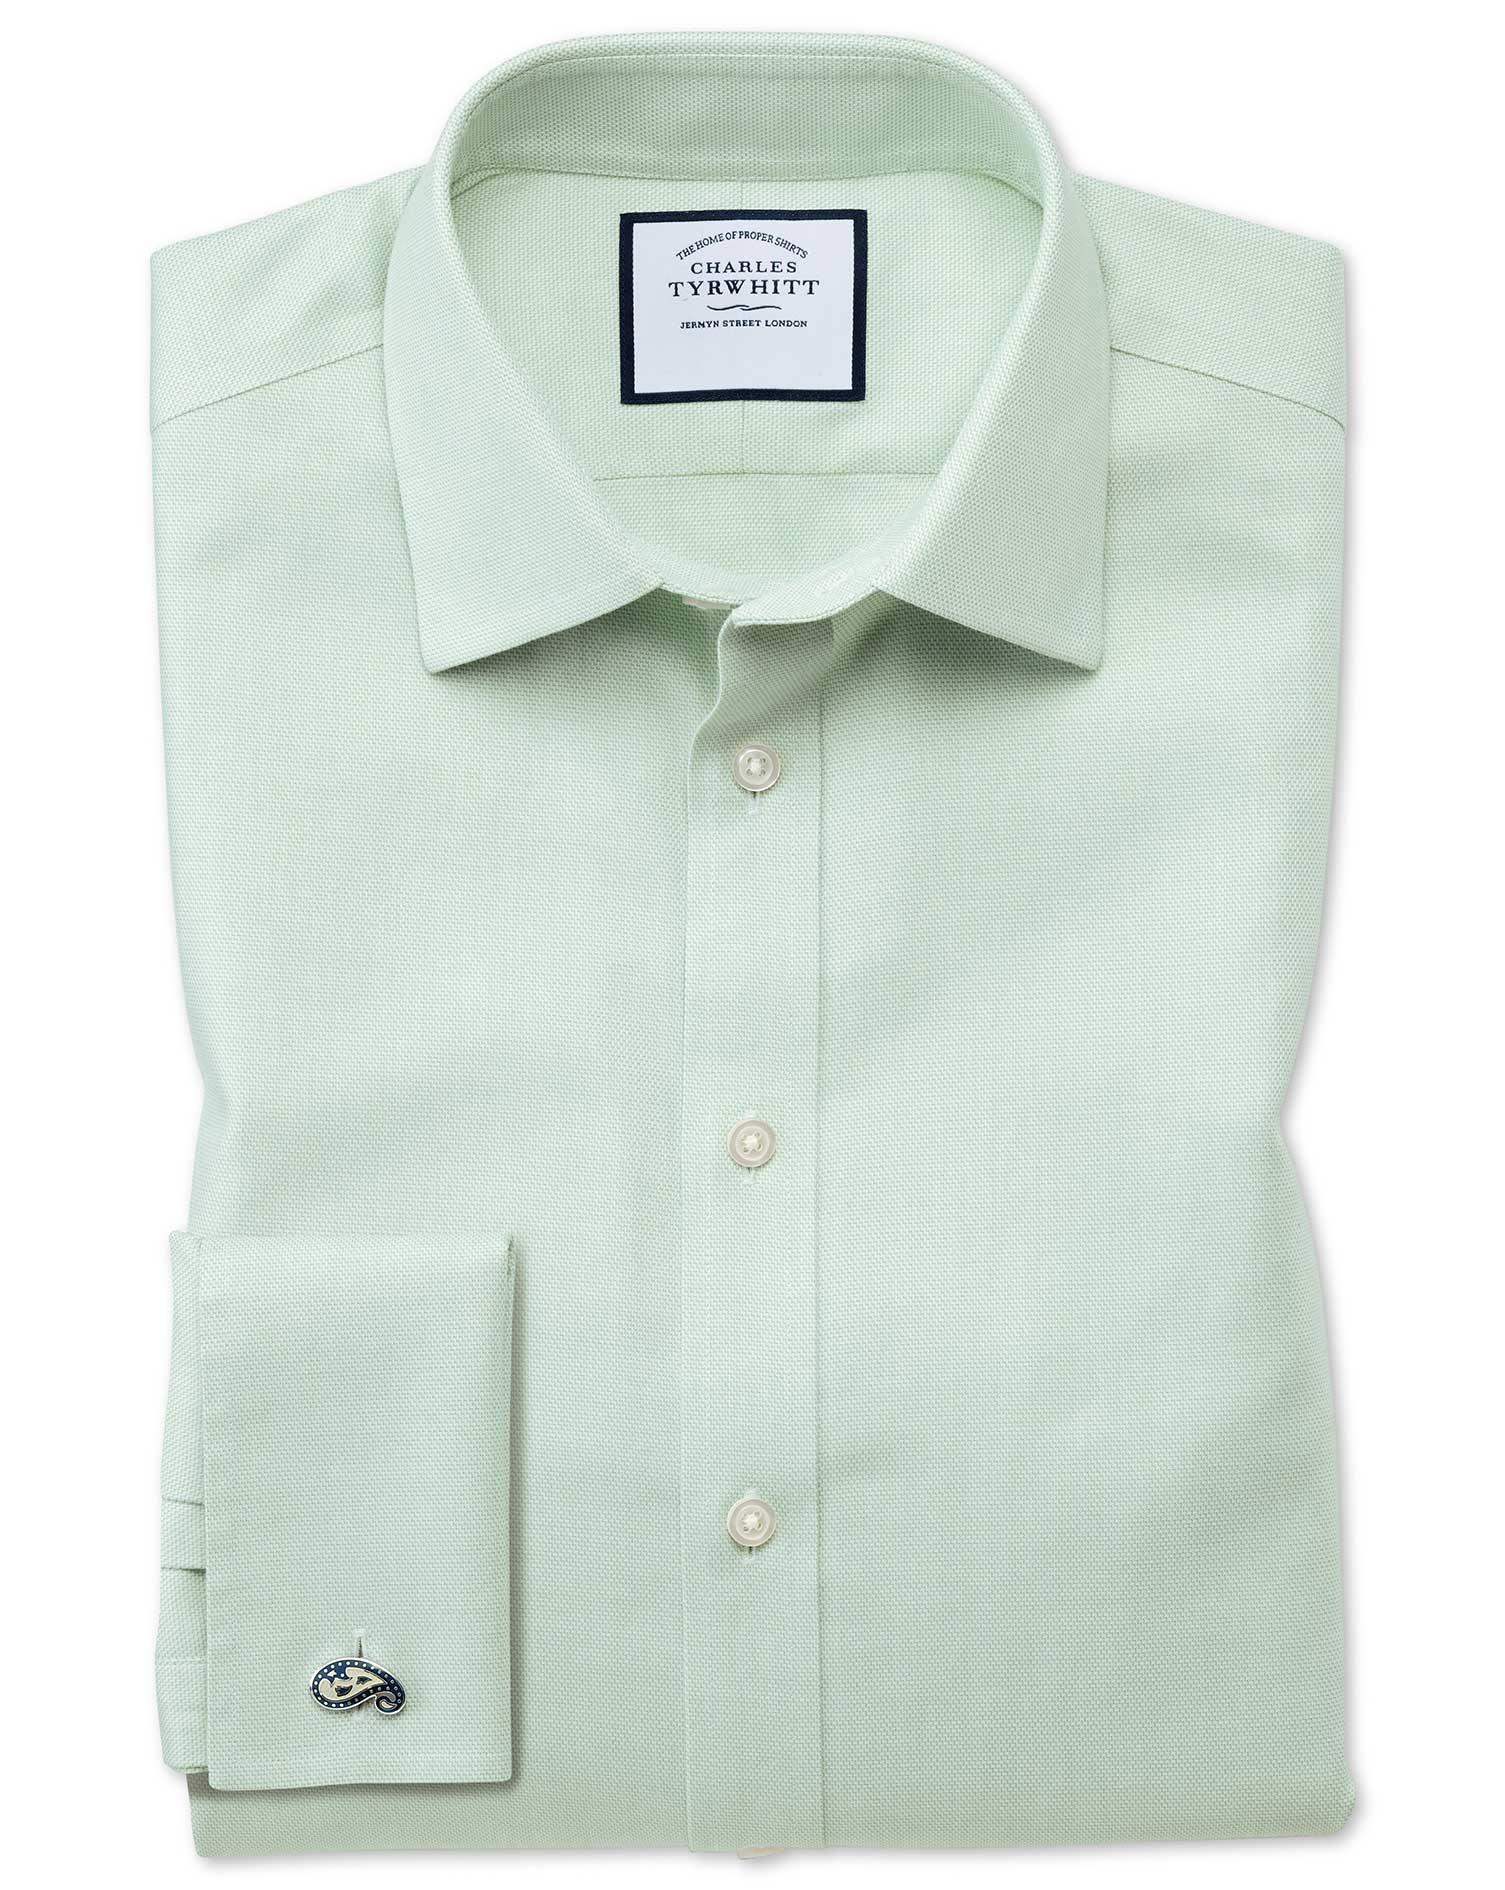 Extra Slim Fit Non-Iron Step Weave Green Cotton Formal Shirt Single Cuff Size 17.5/36 by Charles Tyr